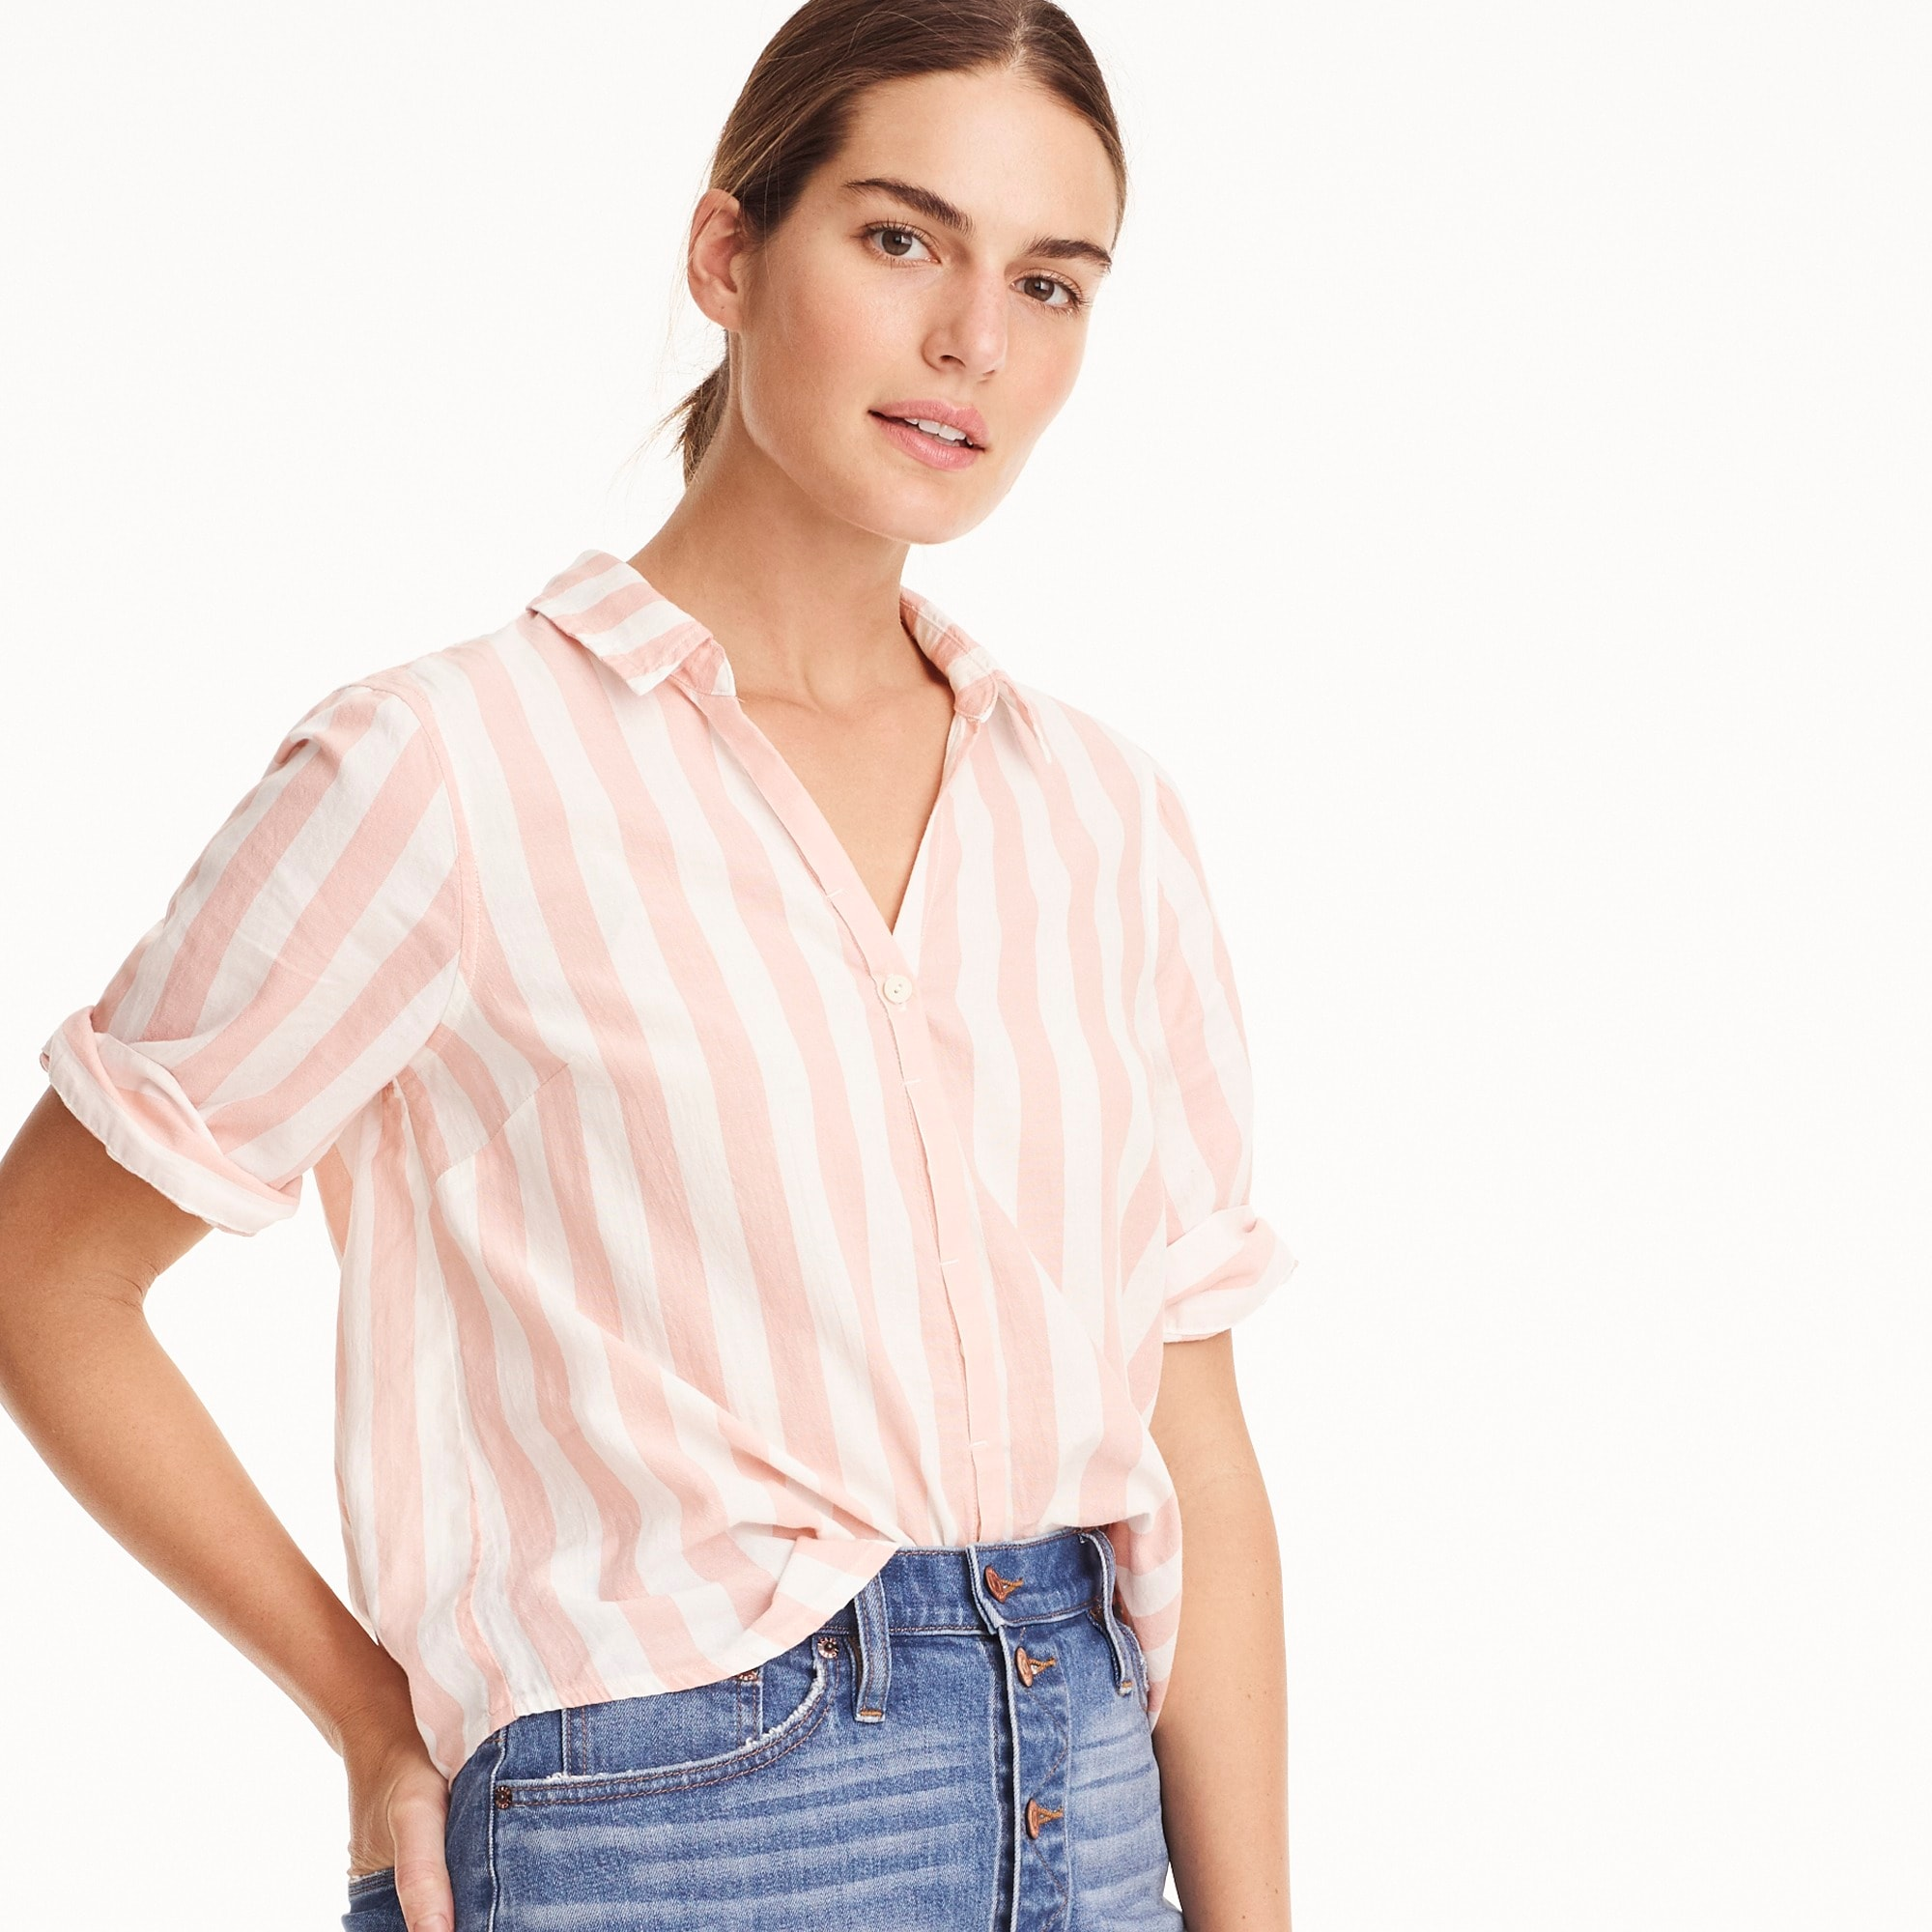 Short-sleeve button-up shirt in wide stripe women shirts & tops c